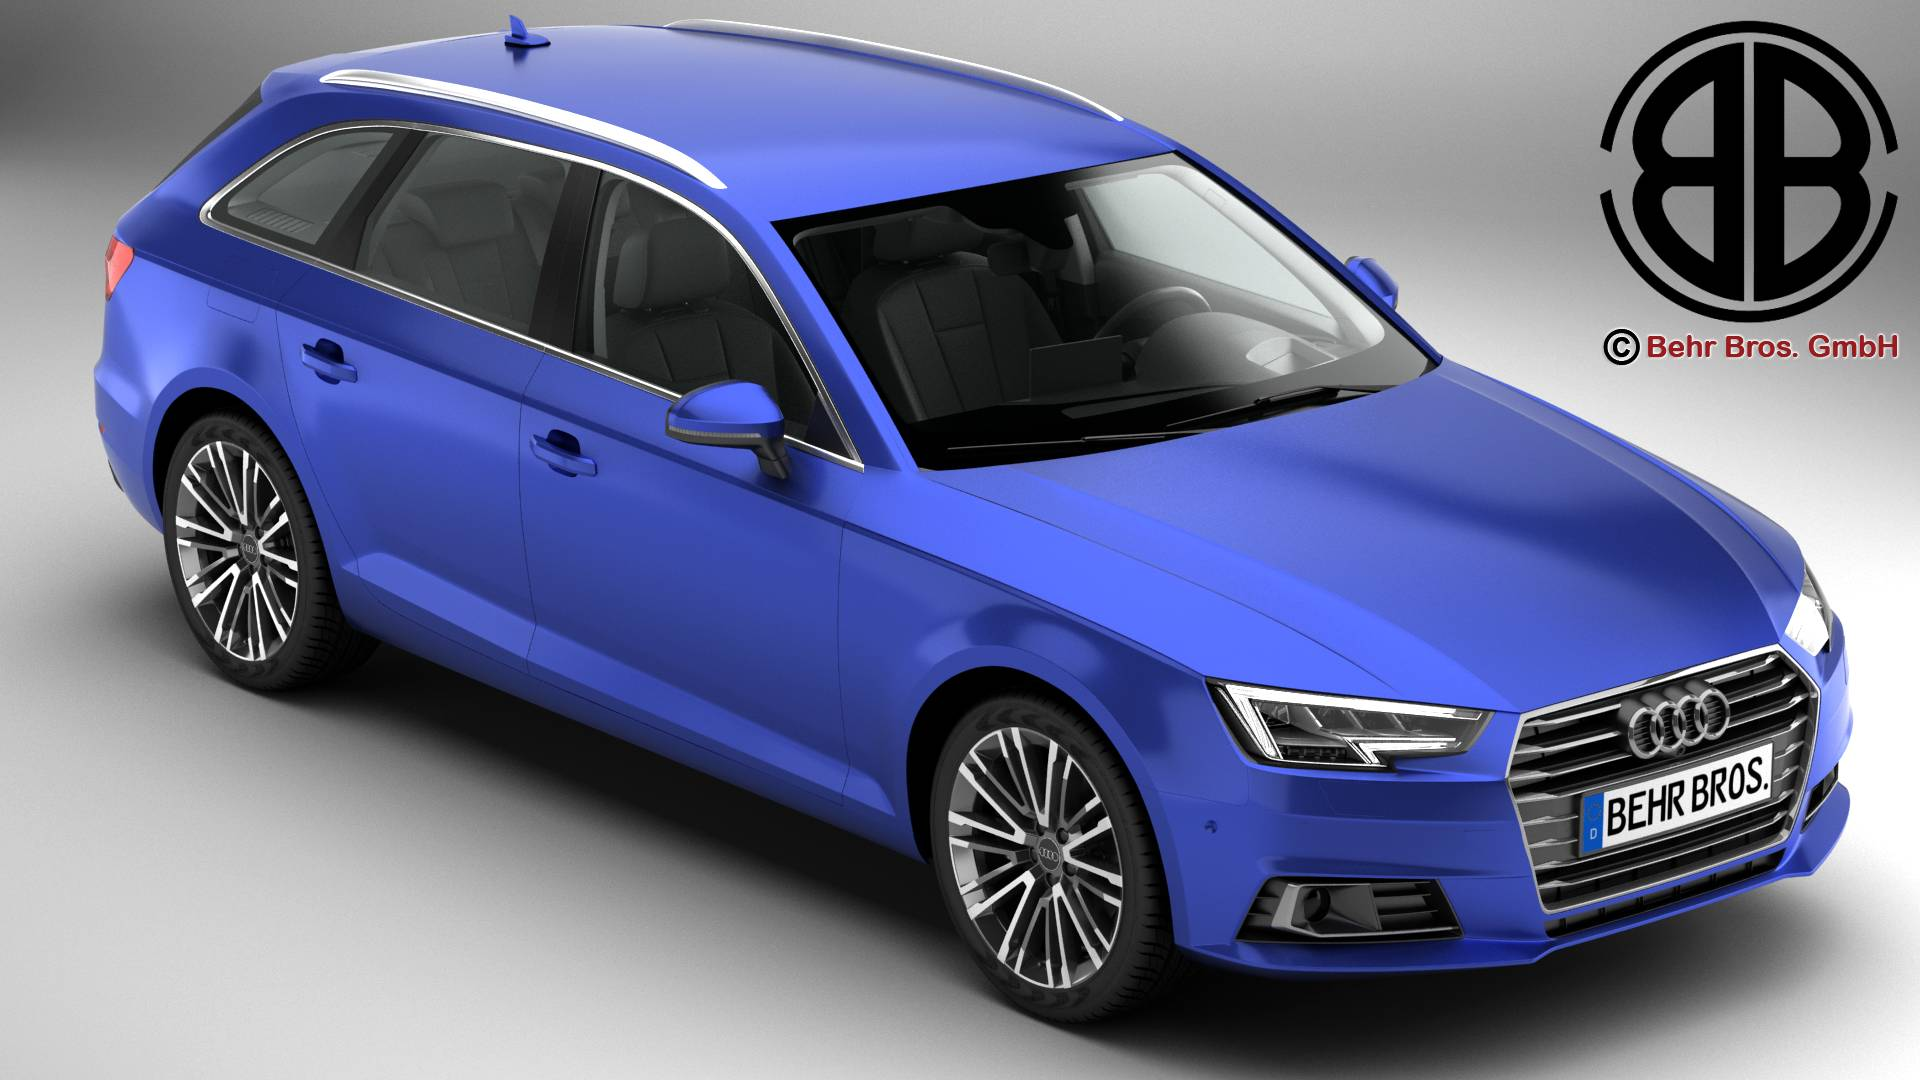 Audi a4 avant 2016 3d model 3ds max fbx c4d le do thoil 218555